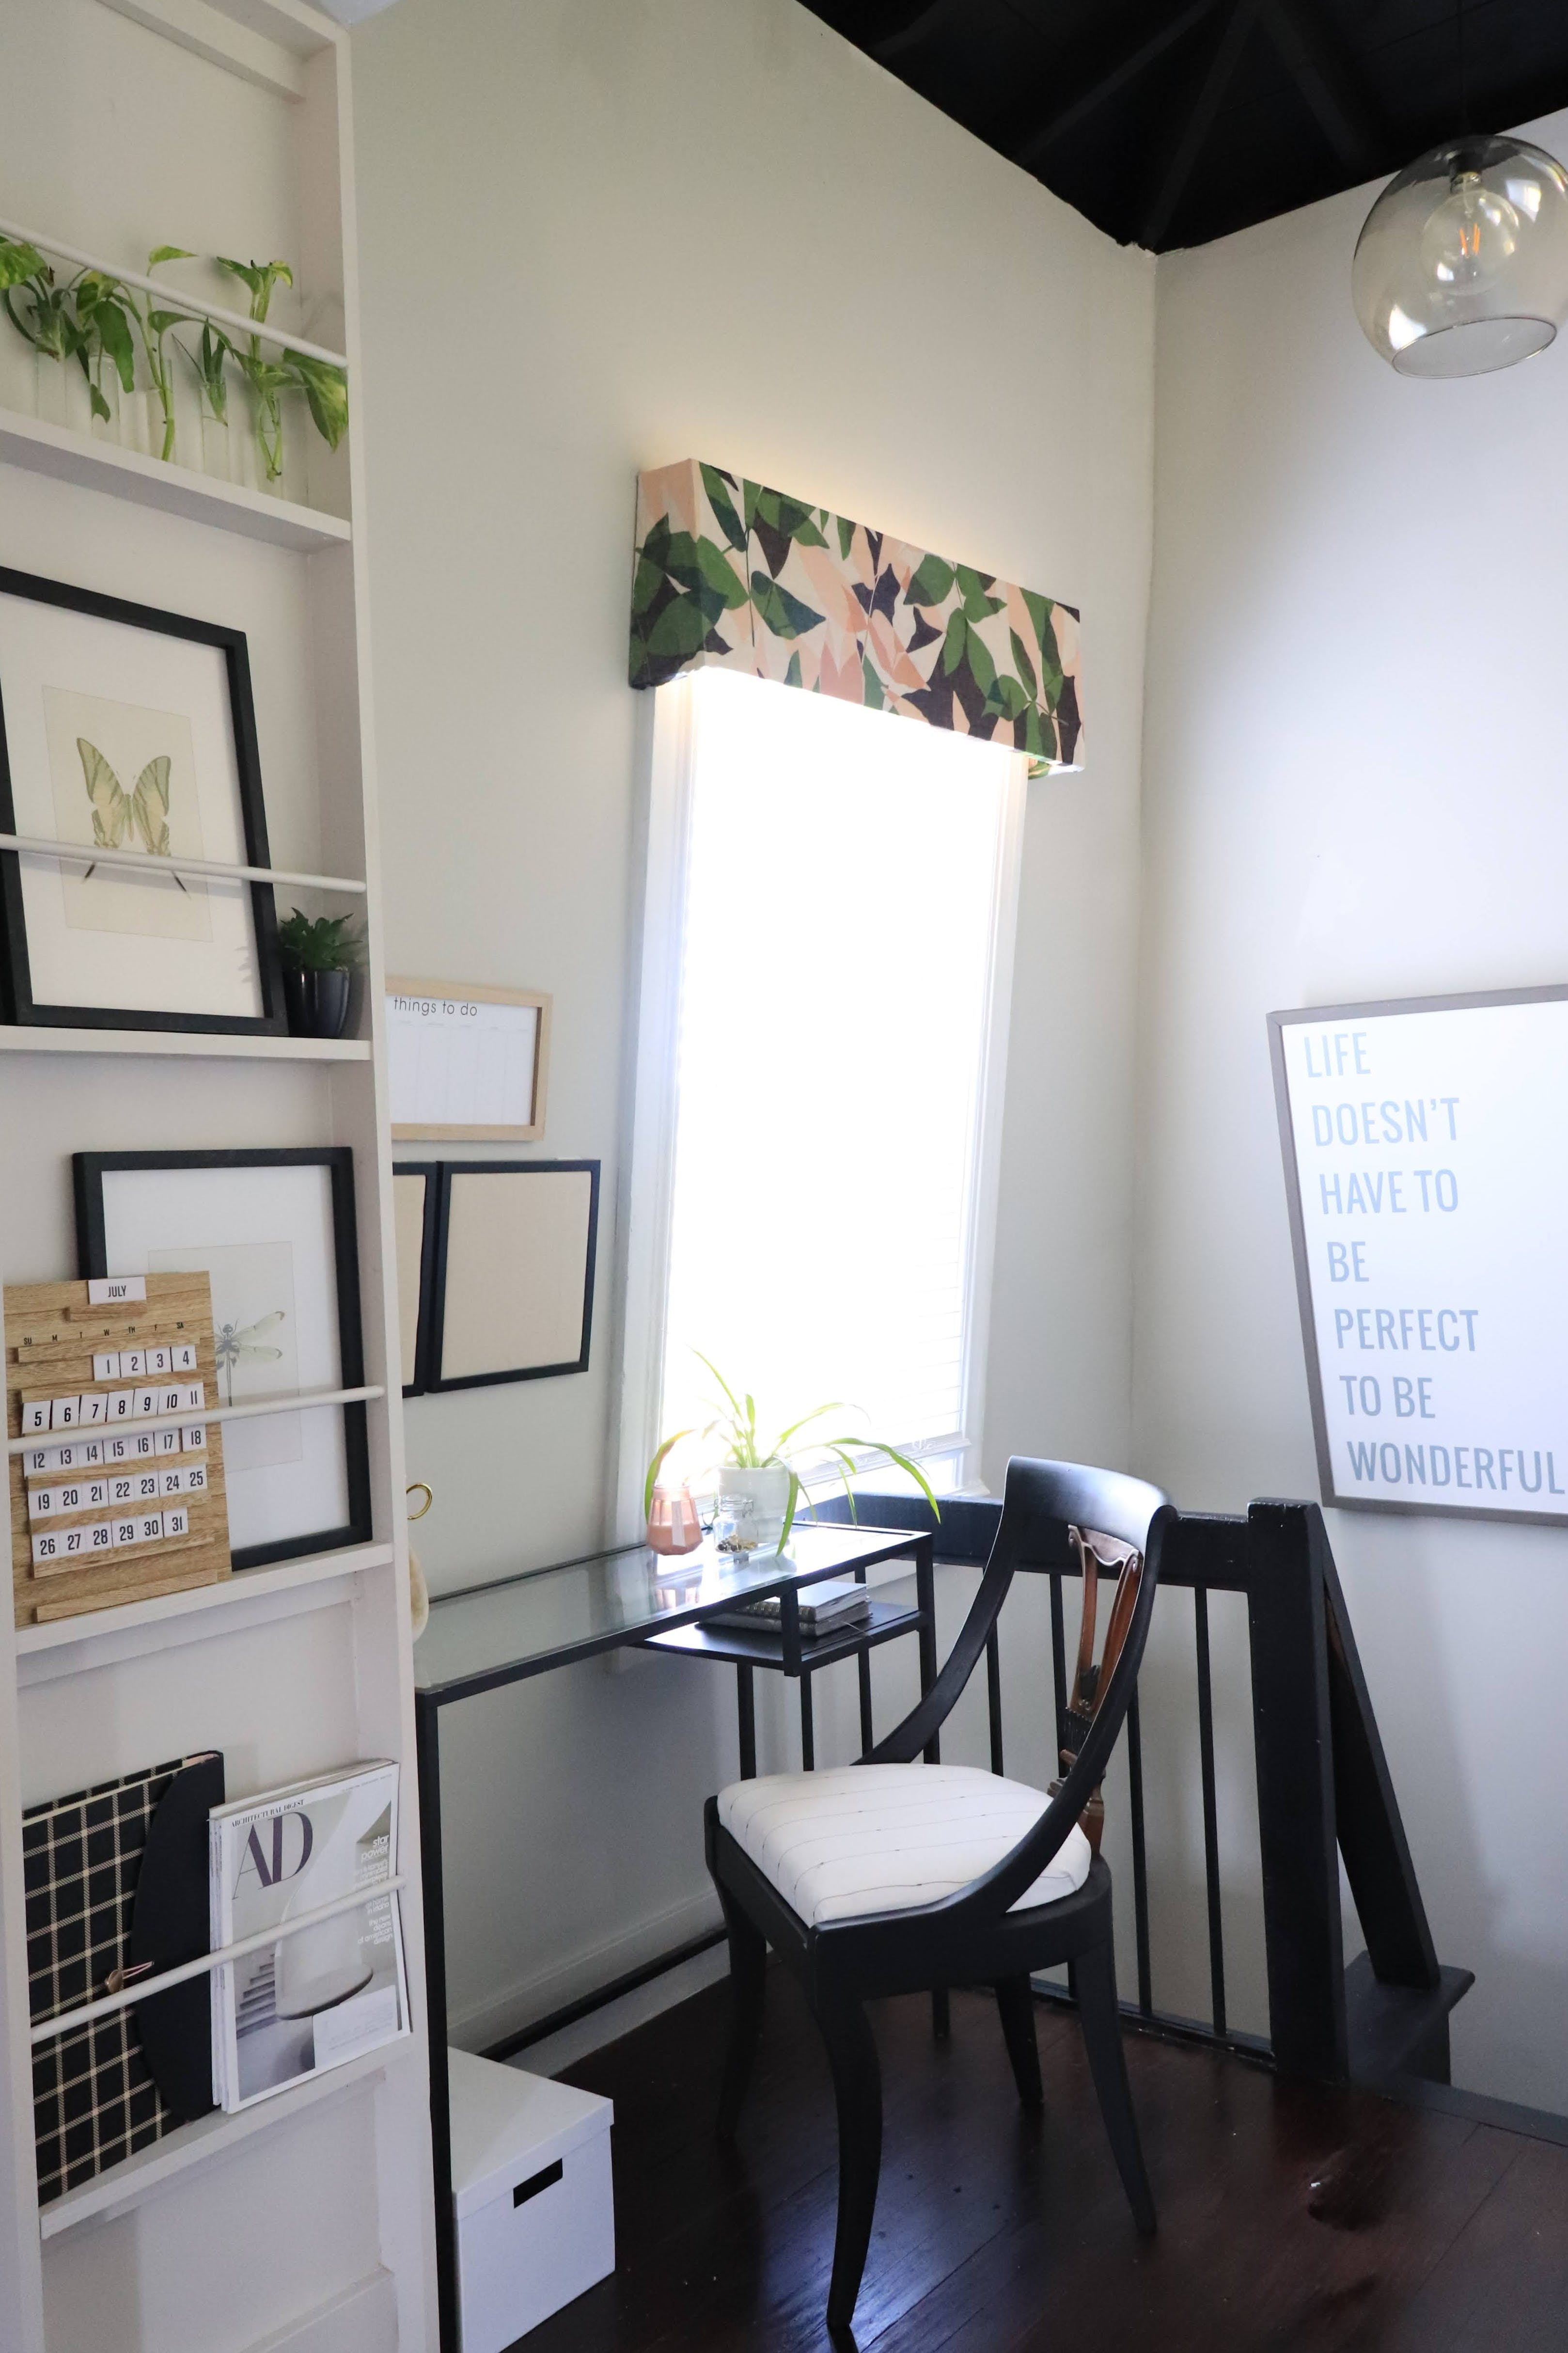 small desk workspace at top of stairs in loft